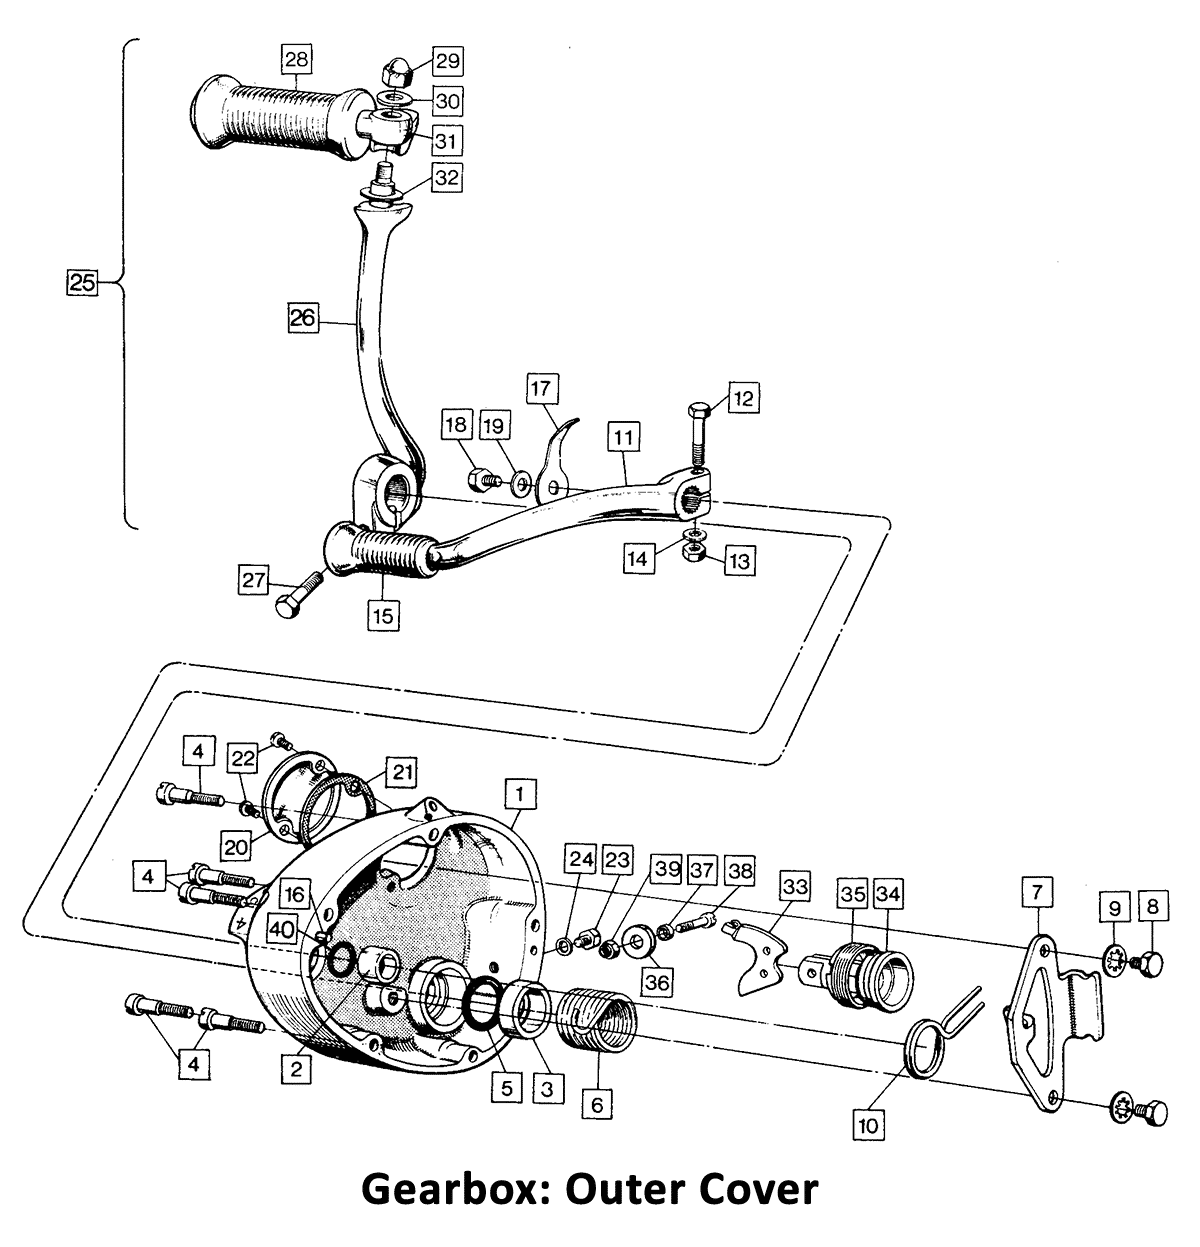 1971 Norton Commando Gearbox Outer Cover -